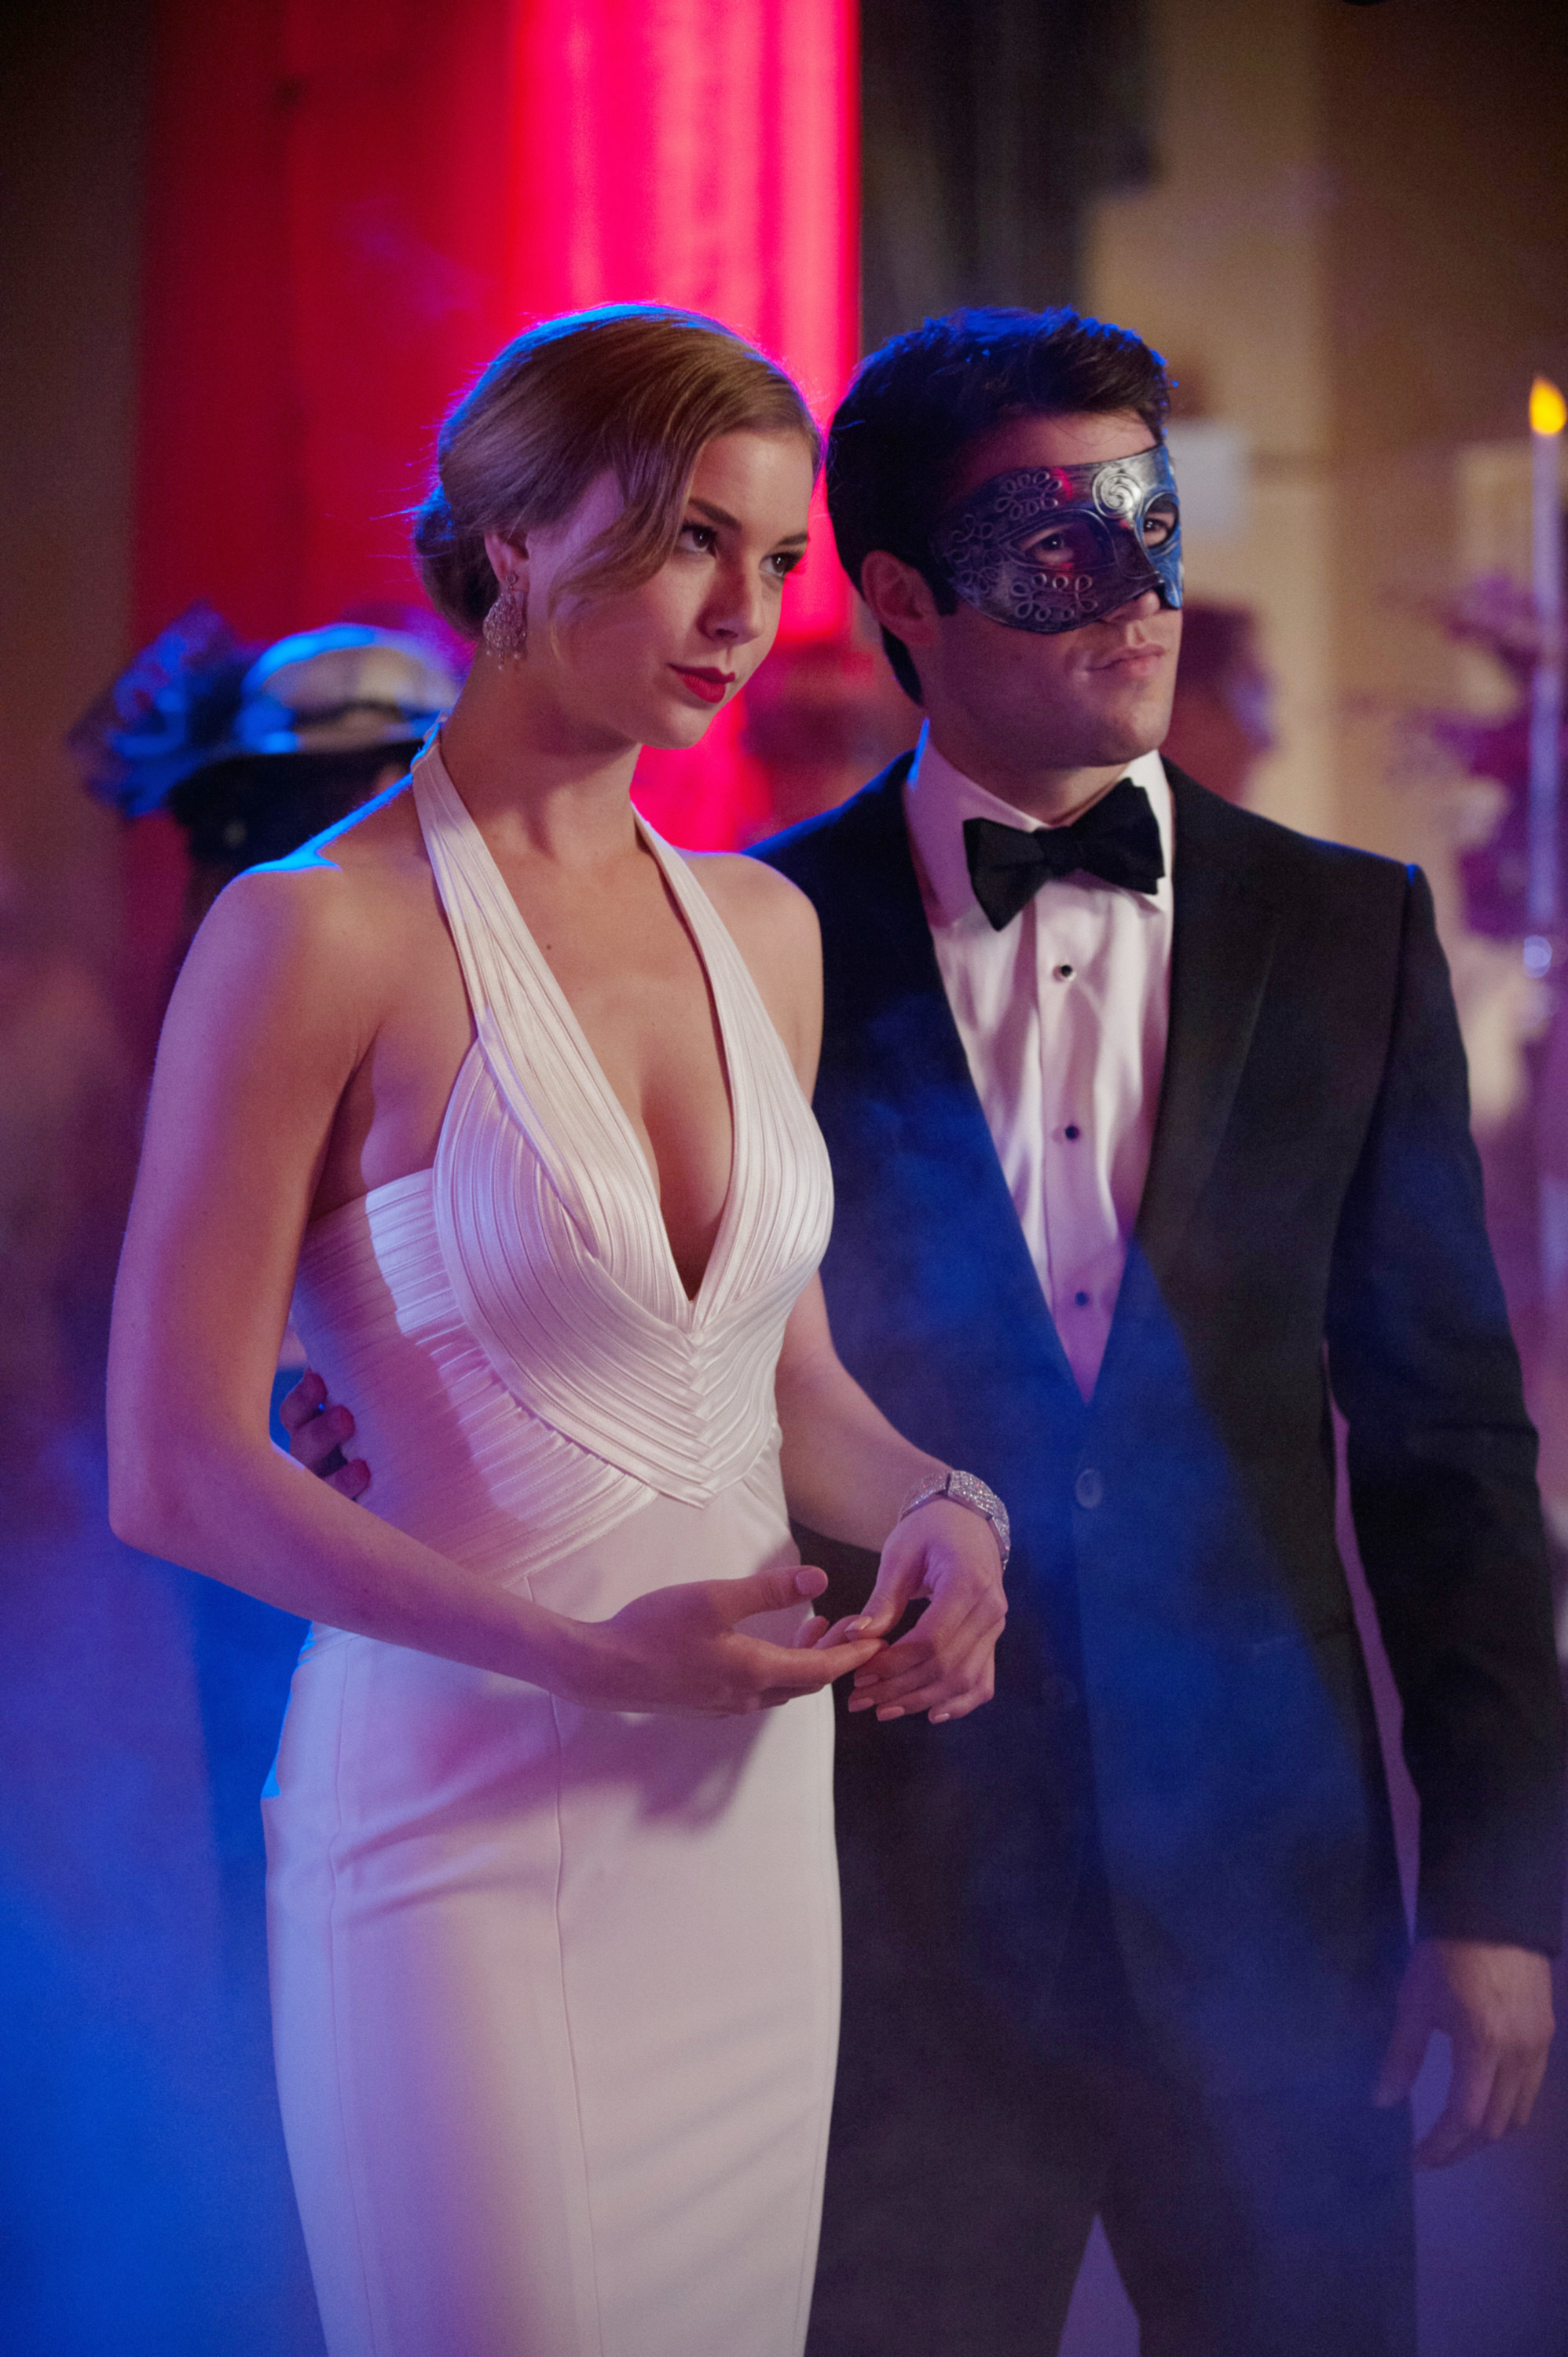 They're at a masquerade ball